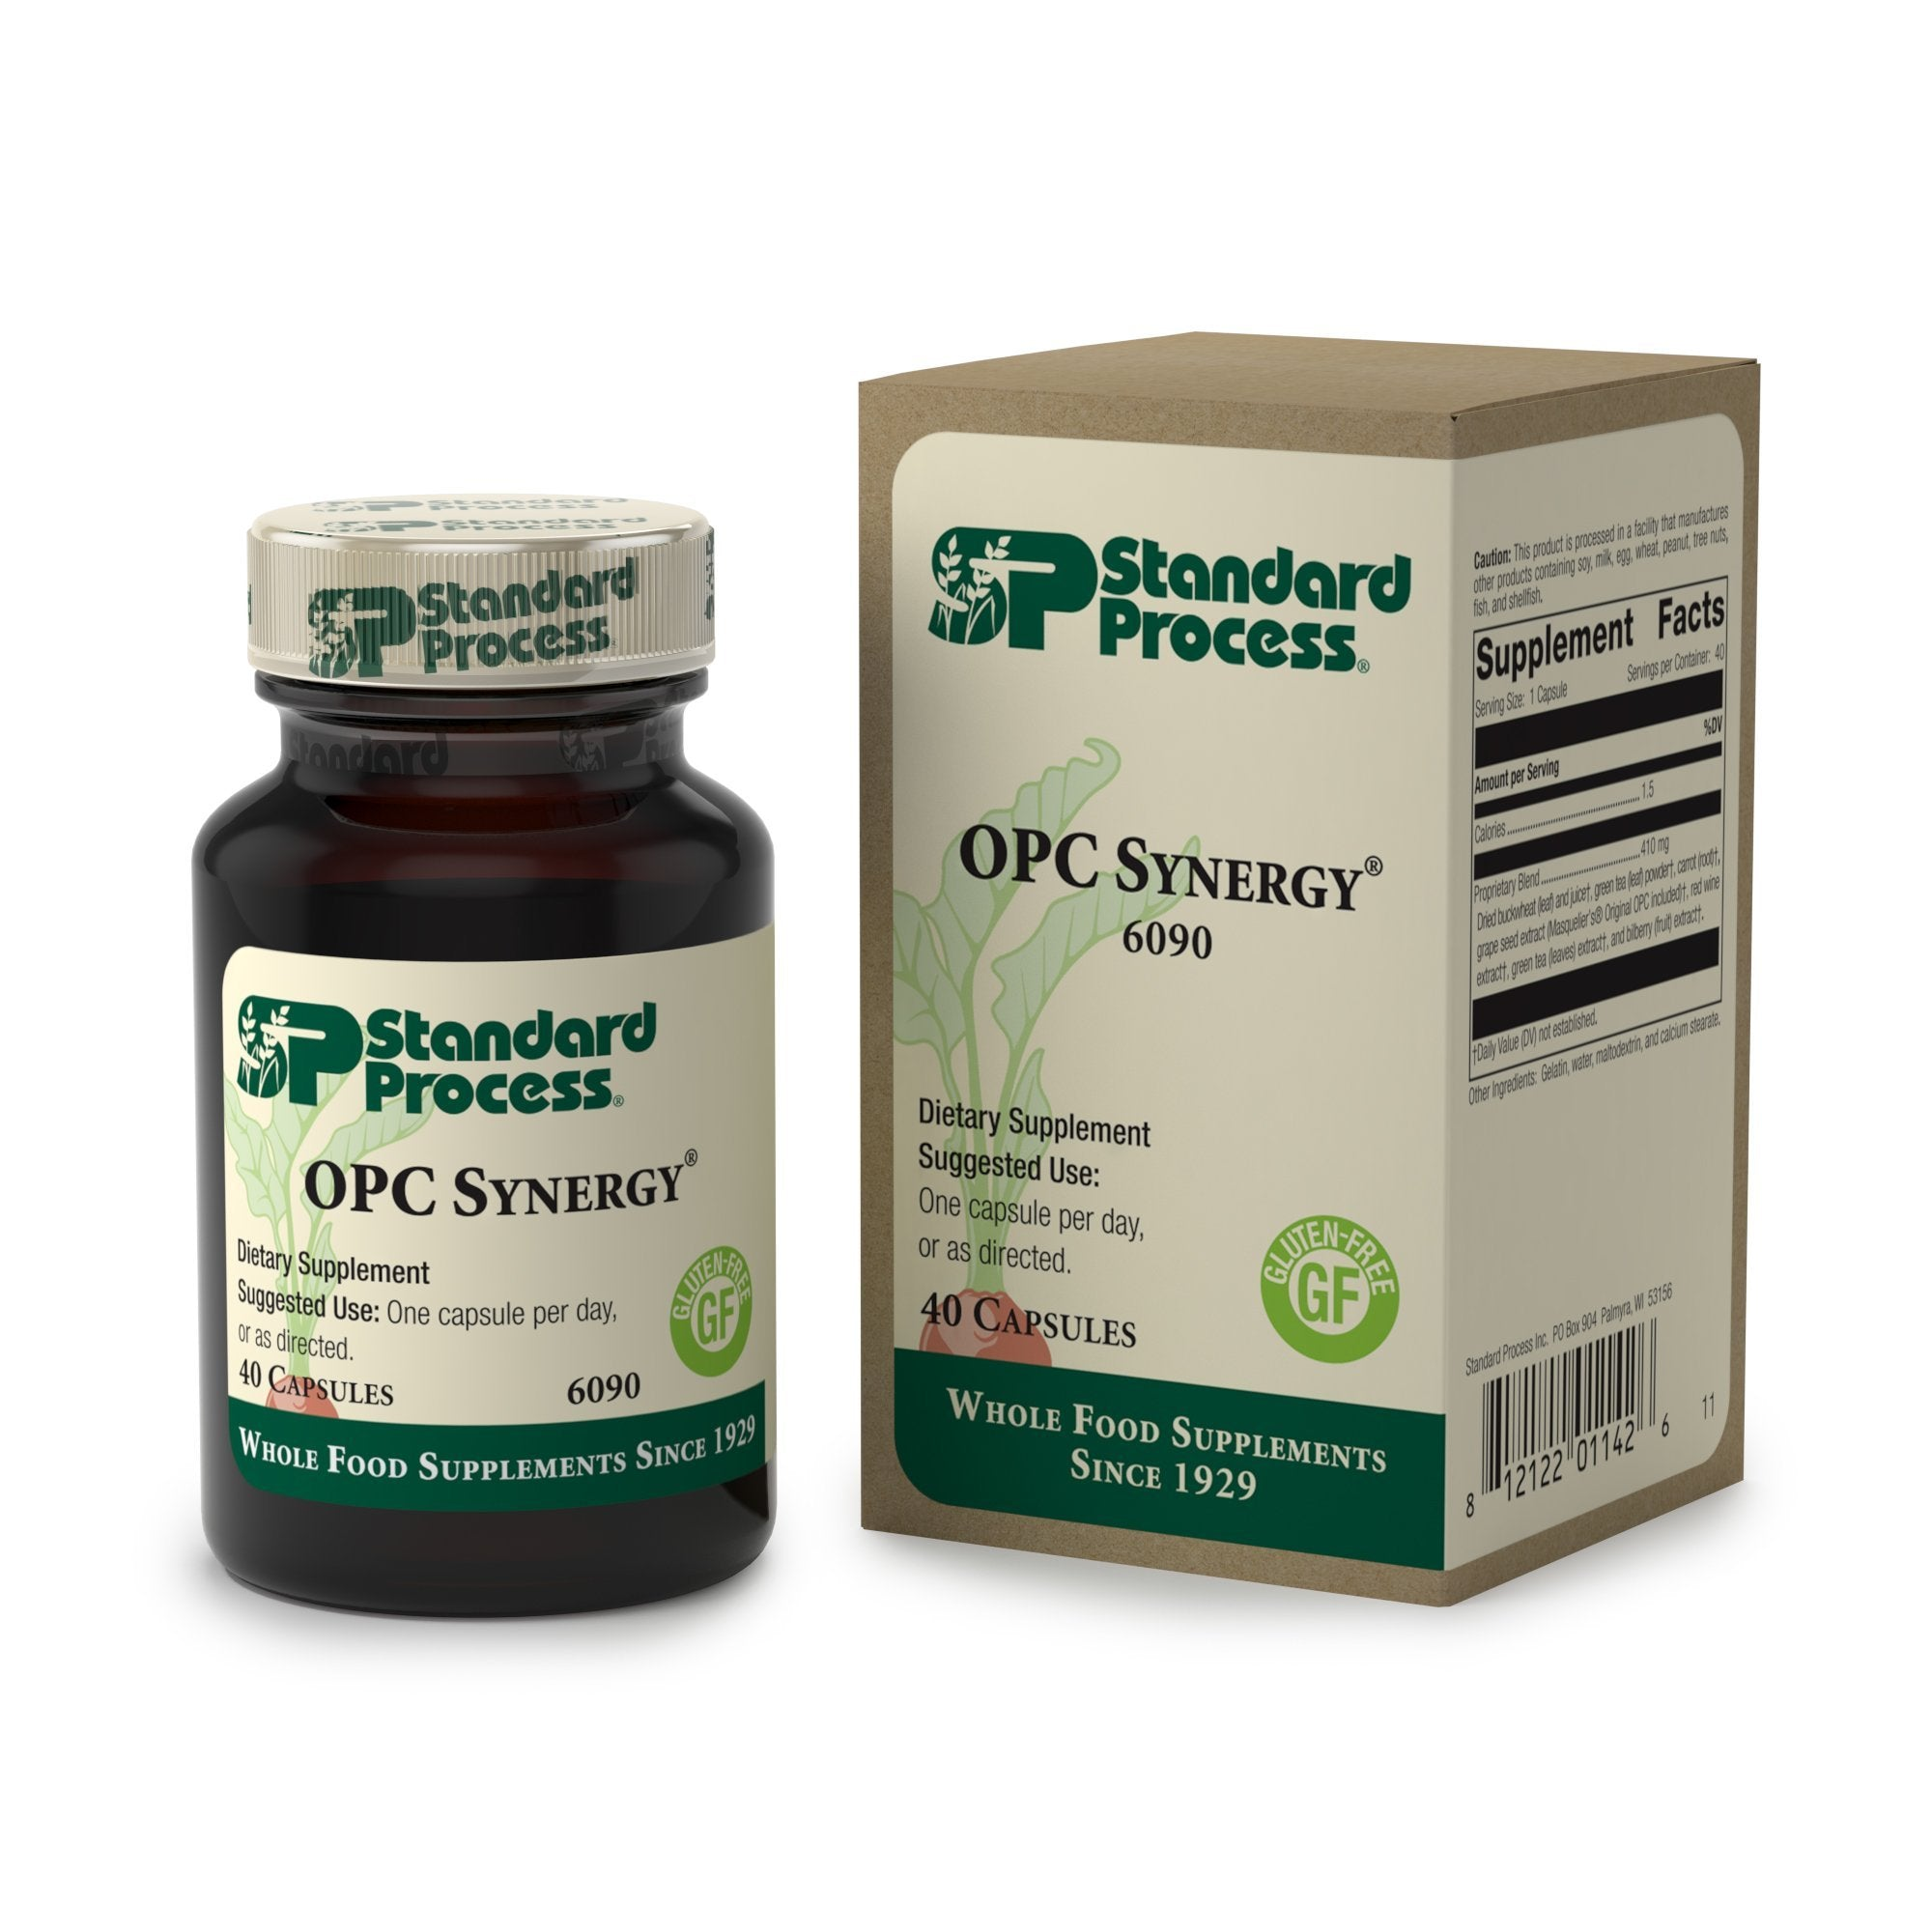 Standard Process - OPC Synergy - Provides Ingredients with Antioxidant Activity, Supports Eye Health, Cognitive Function, and Normal Cell Function, Gluten Free - 40 Capsules